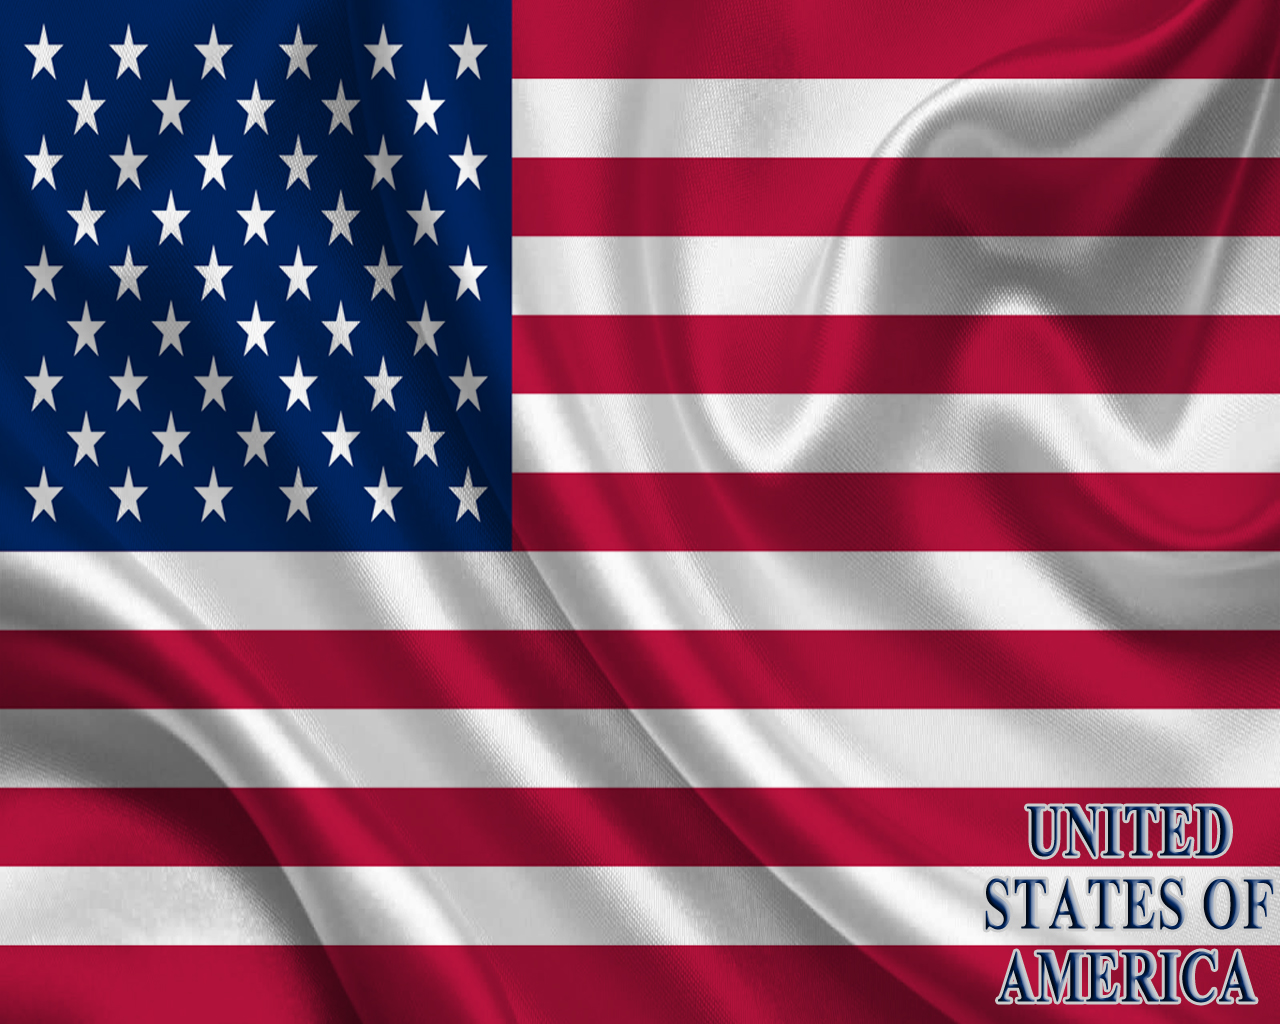 united states of america desktop 1280x1024 wallpaper Football 1280x1024